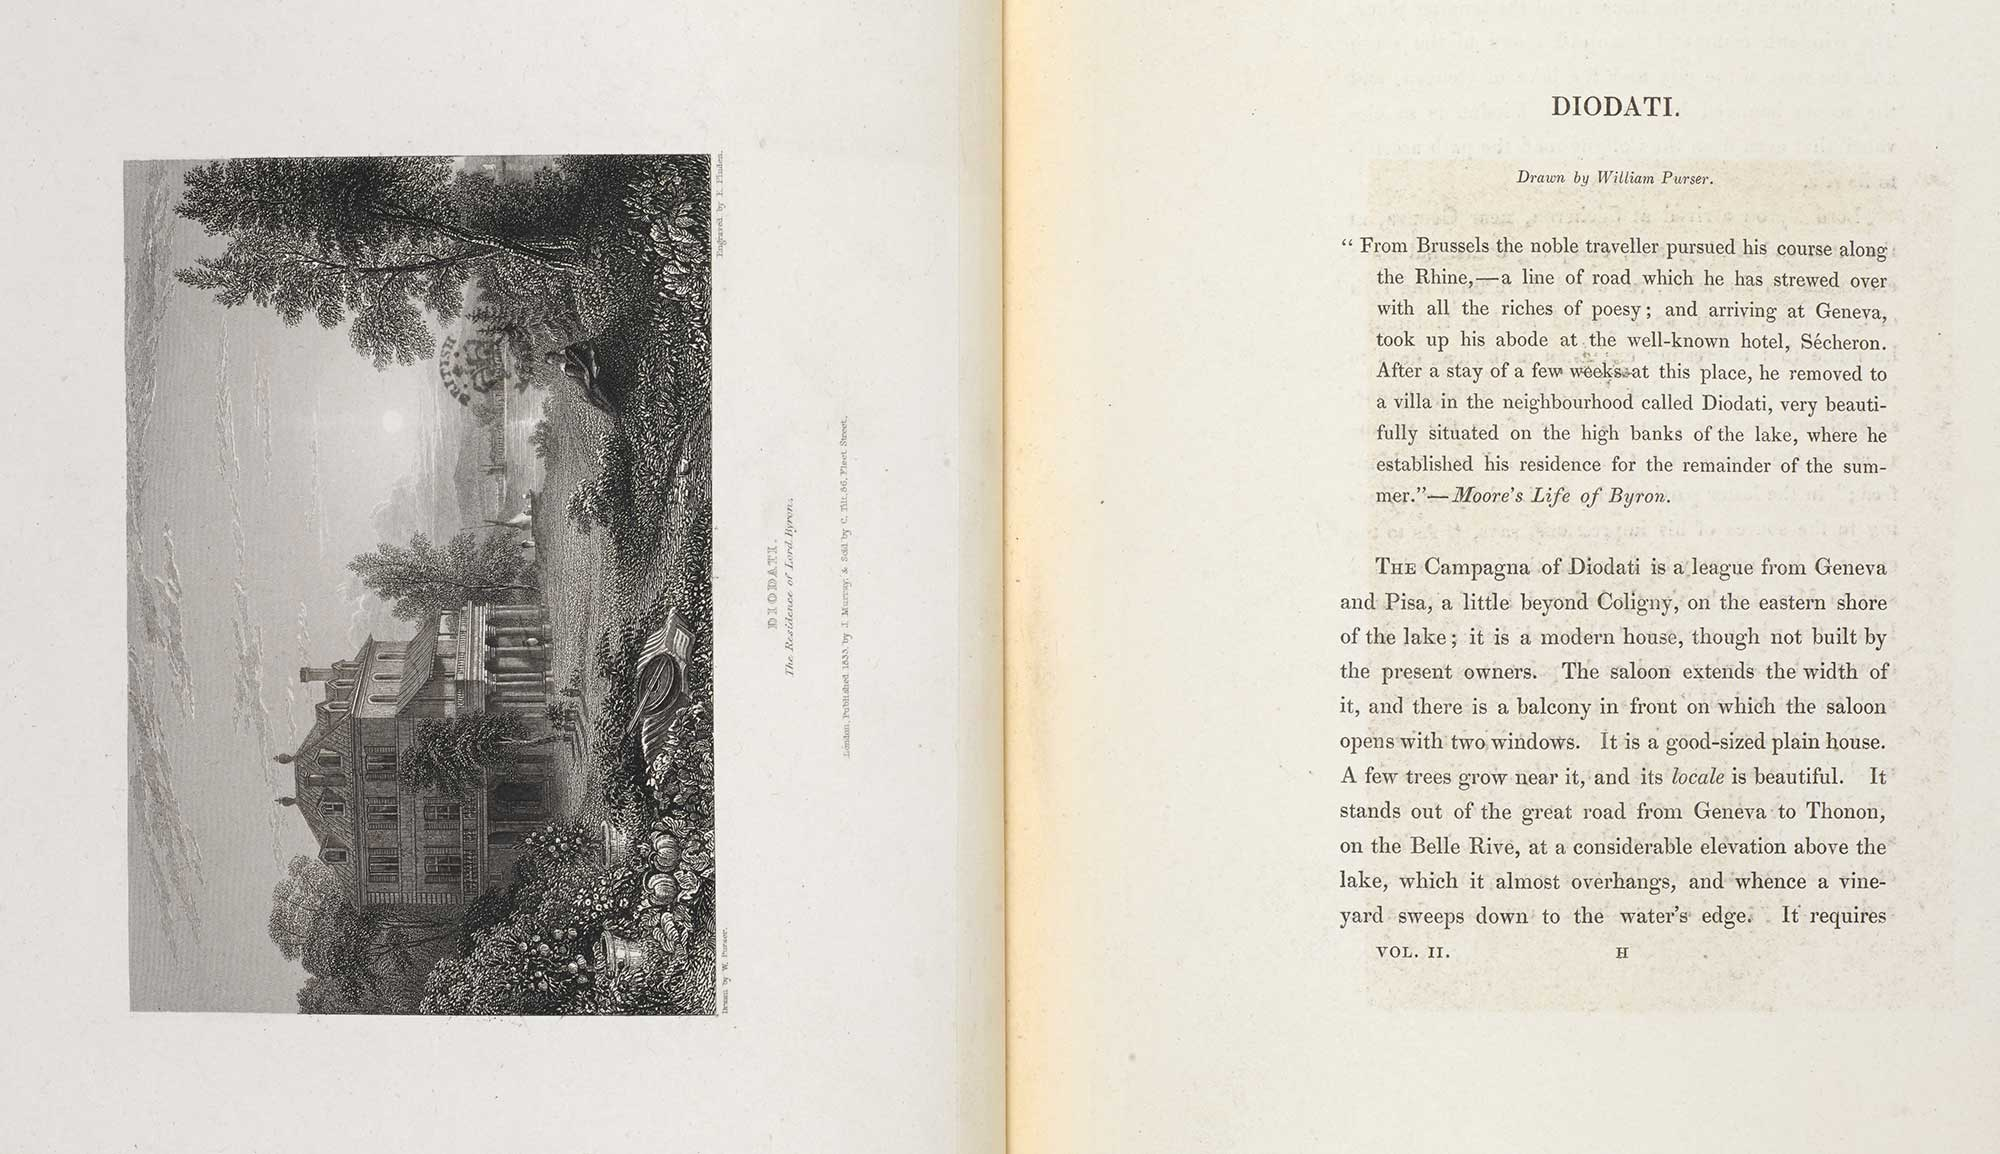 Finden's Illustrations of the Life and Works of Lord Byron [page: Vol 2 – unpaginated, section on Diodati including engraving]